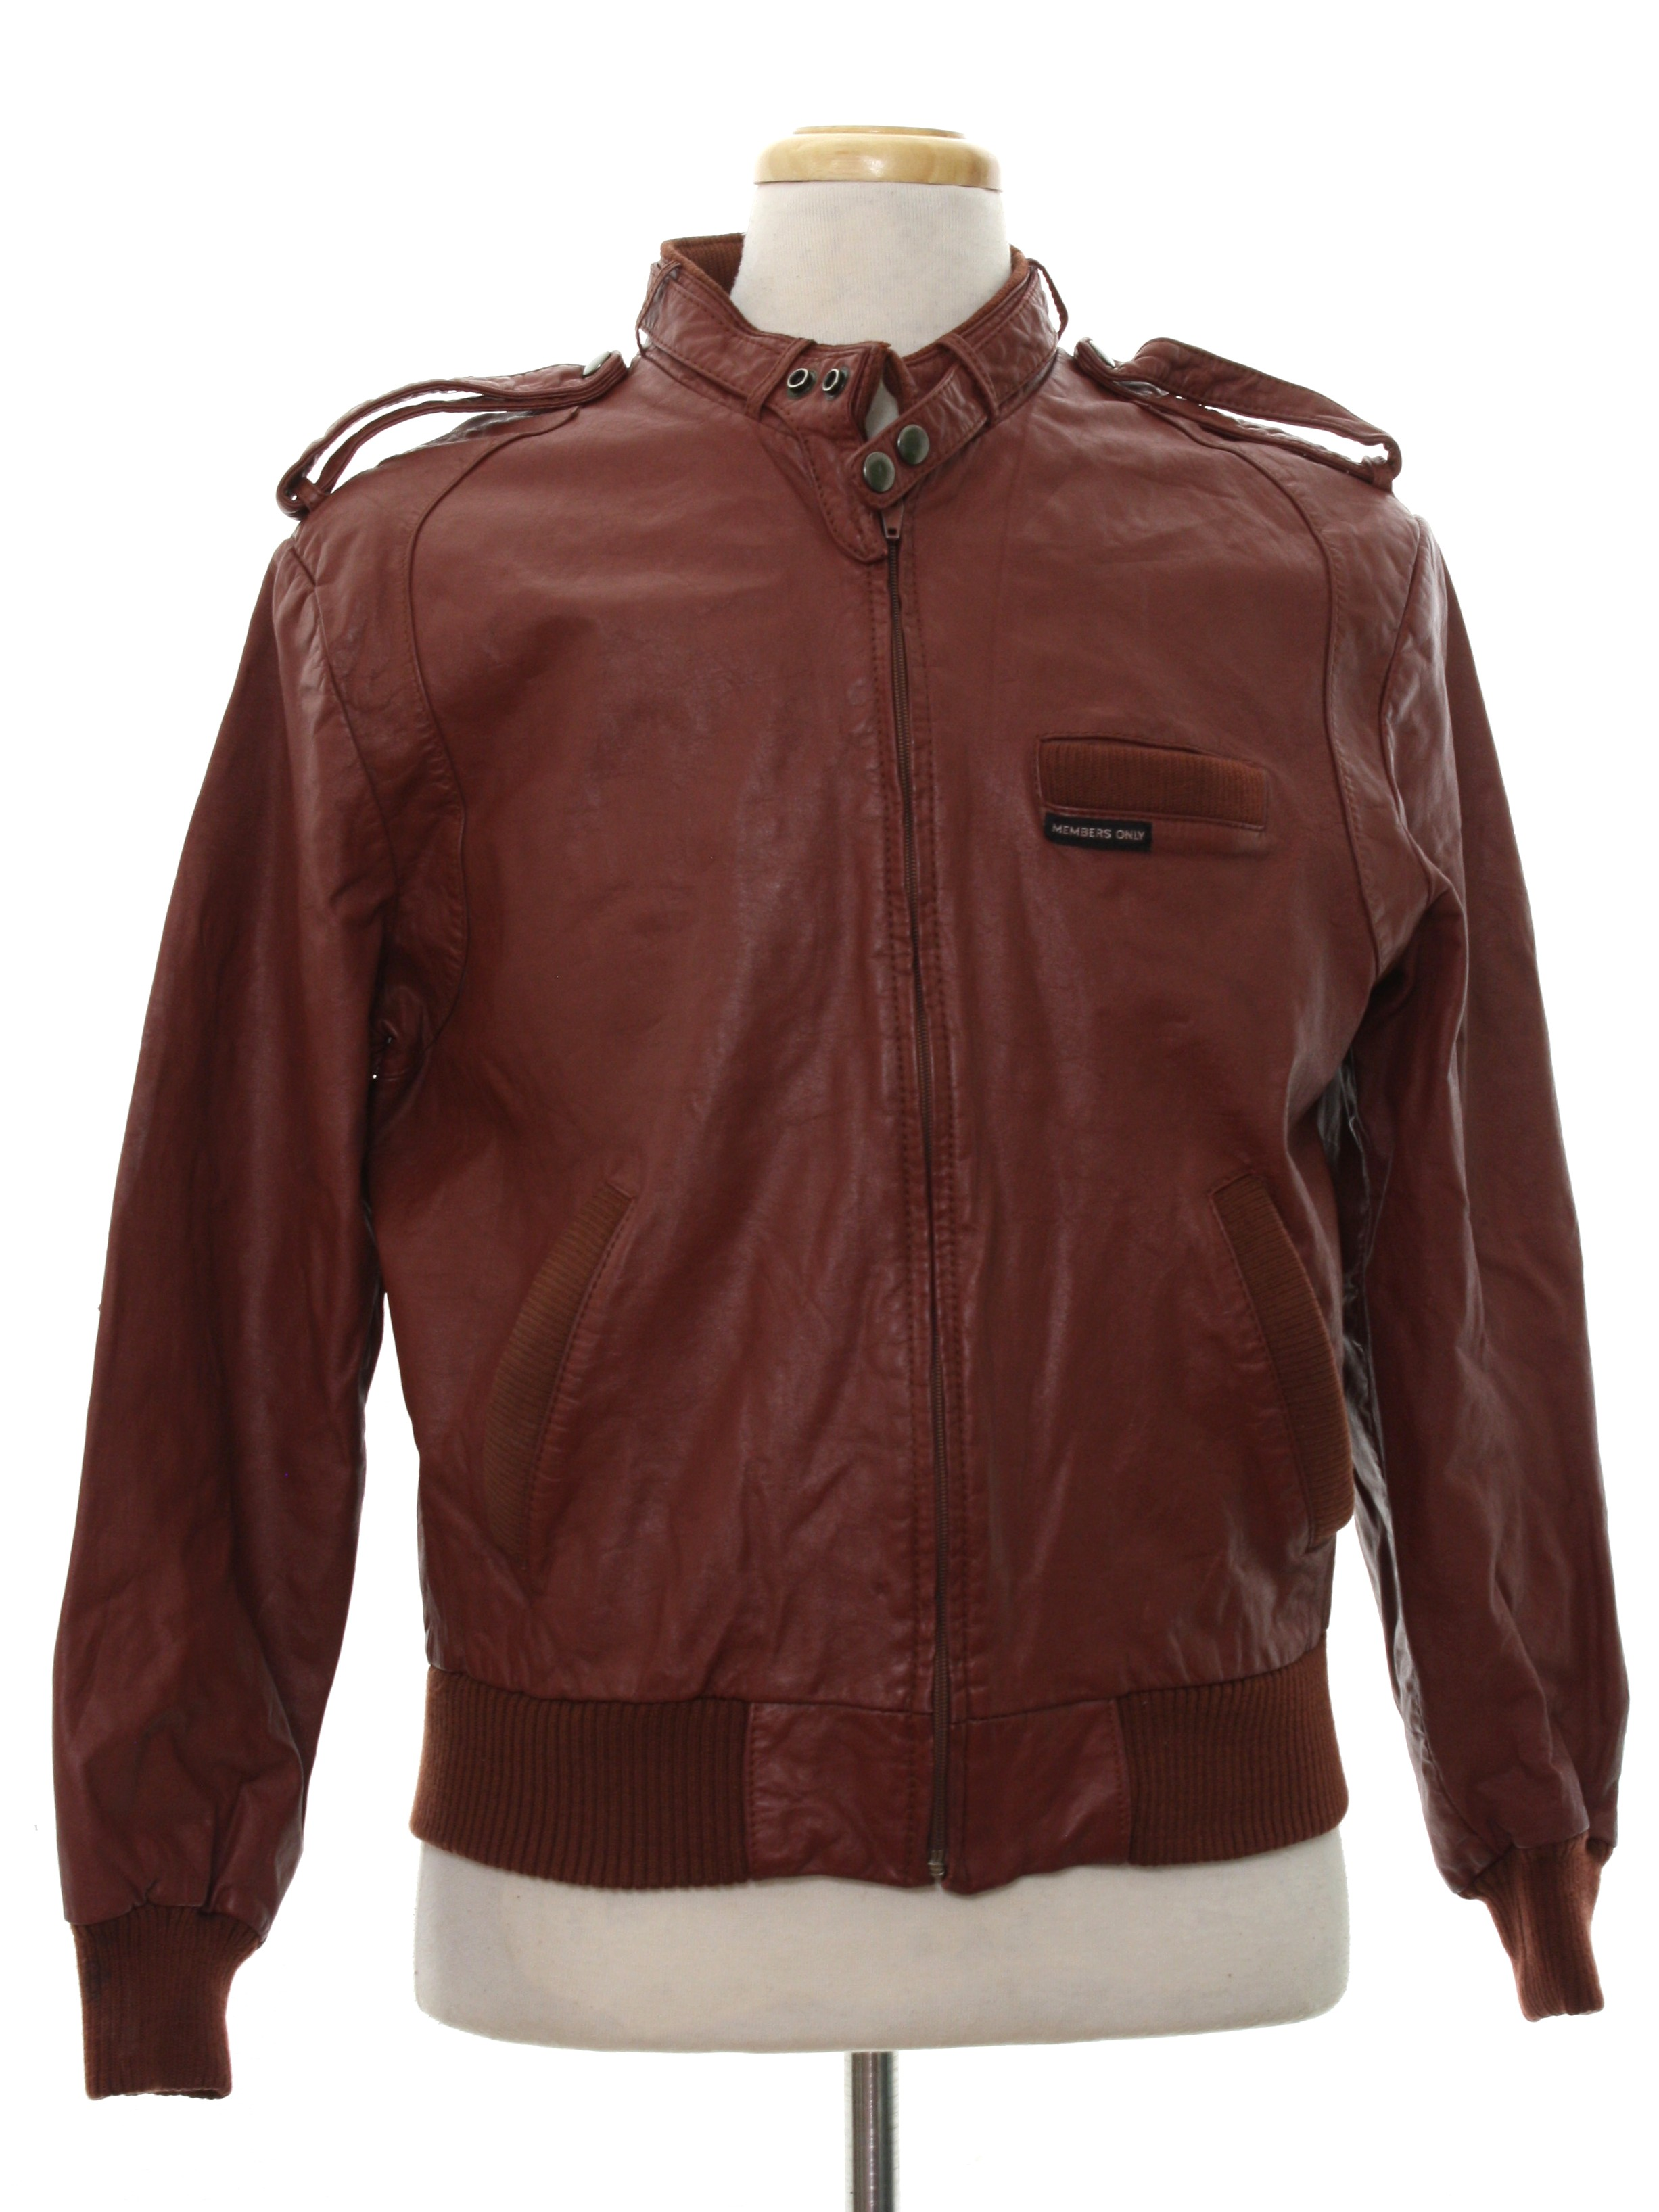 Leather jacket europe - Eighties Leather Jacket 80s Members Only By Europe Craft Mens Brick Red Background Leather Ribbed Knit Cuff Longsleeve Zip Front Members Only Leather